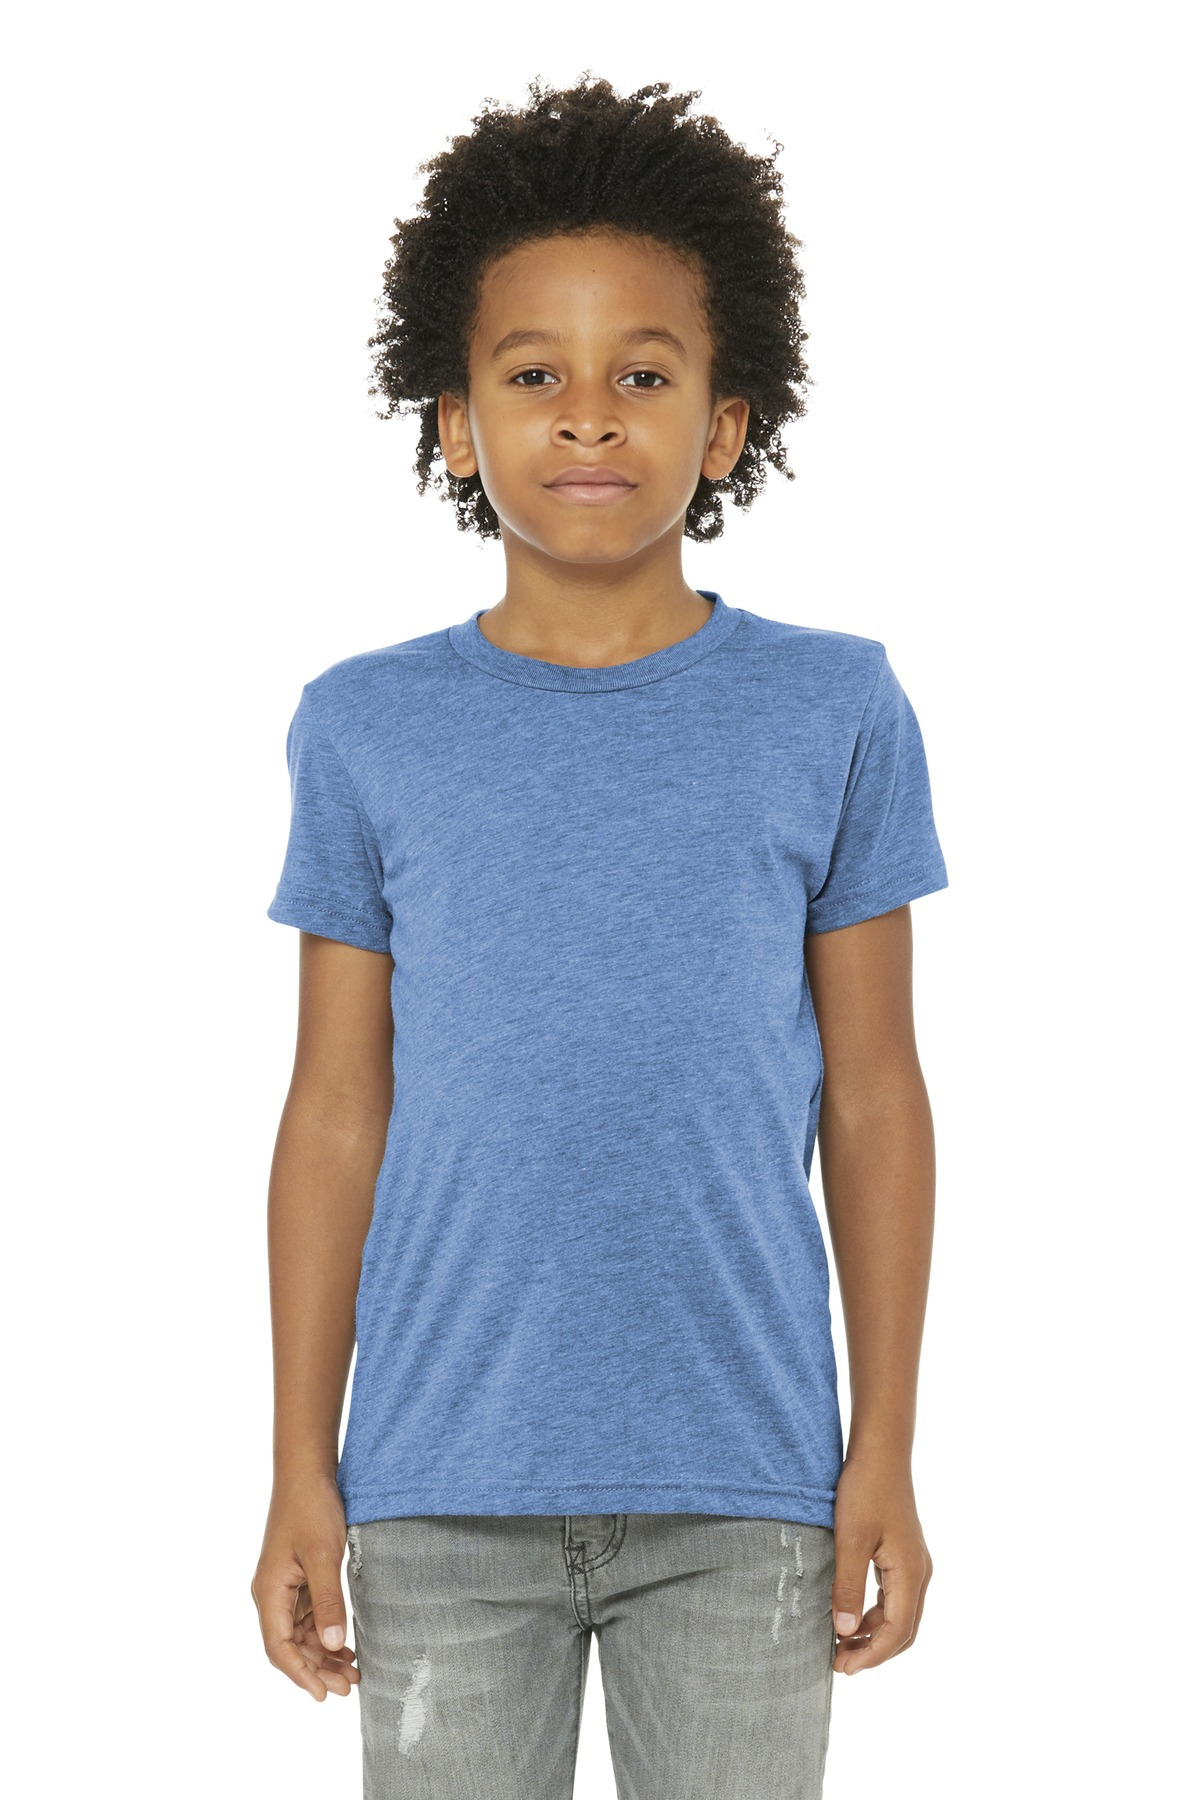 BELLA+CANVAS  ®  Youth Triblend Short Sleeve Tee. BC3413Y - Blue Triblend